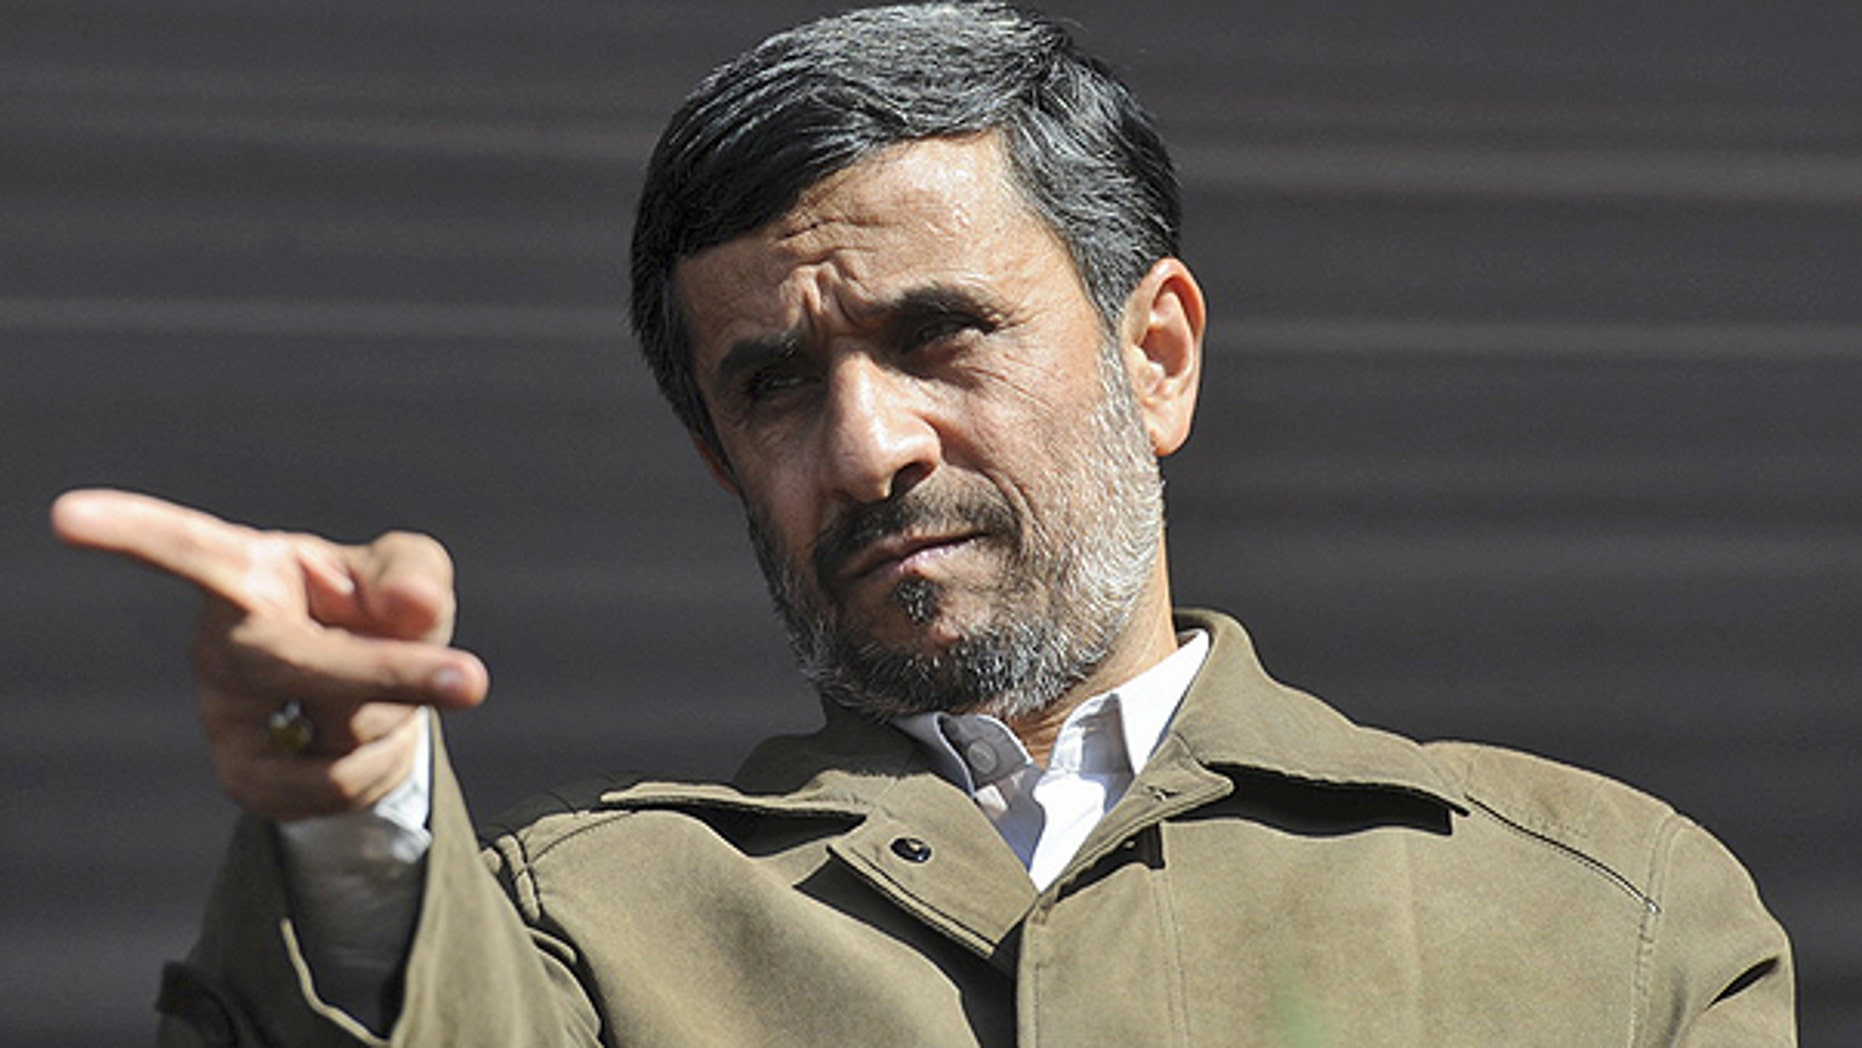 Nov. 10: Iranian President Mahmoud Ahmadinejad gestures prior to delivering his speech at a public gathering during his provincial tour in the city of Qazvin about 90 miles west of the capital Tehran.